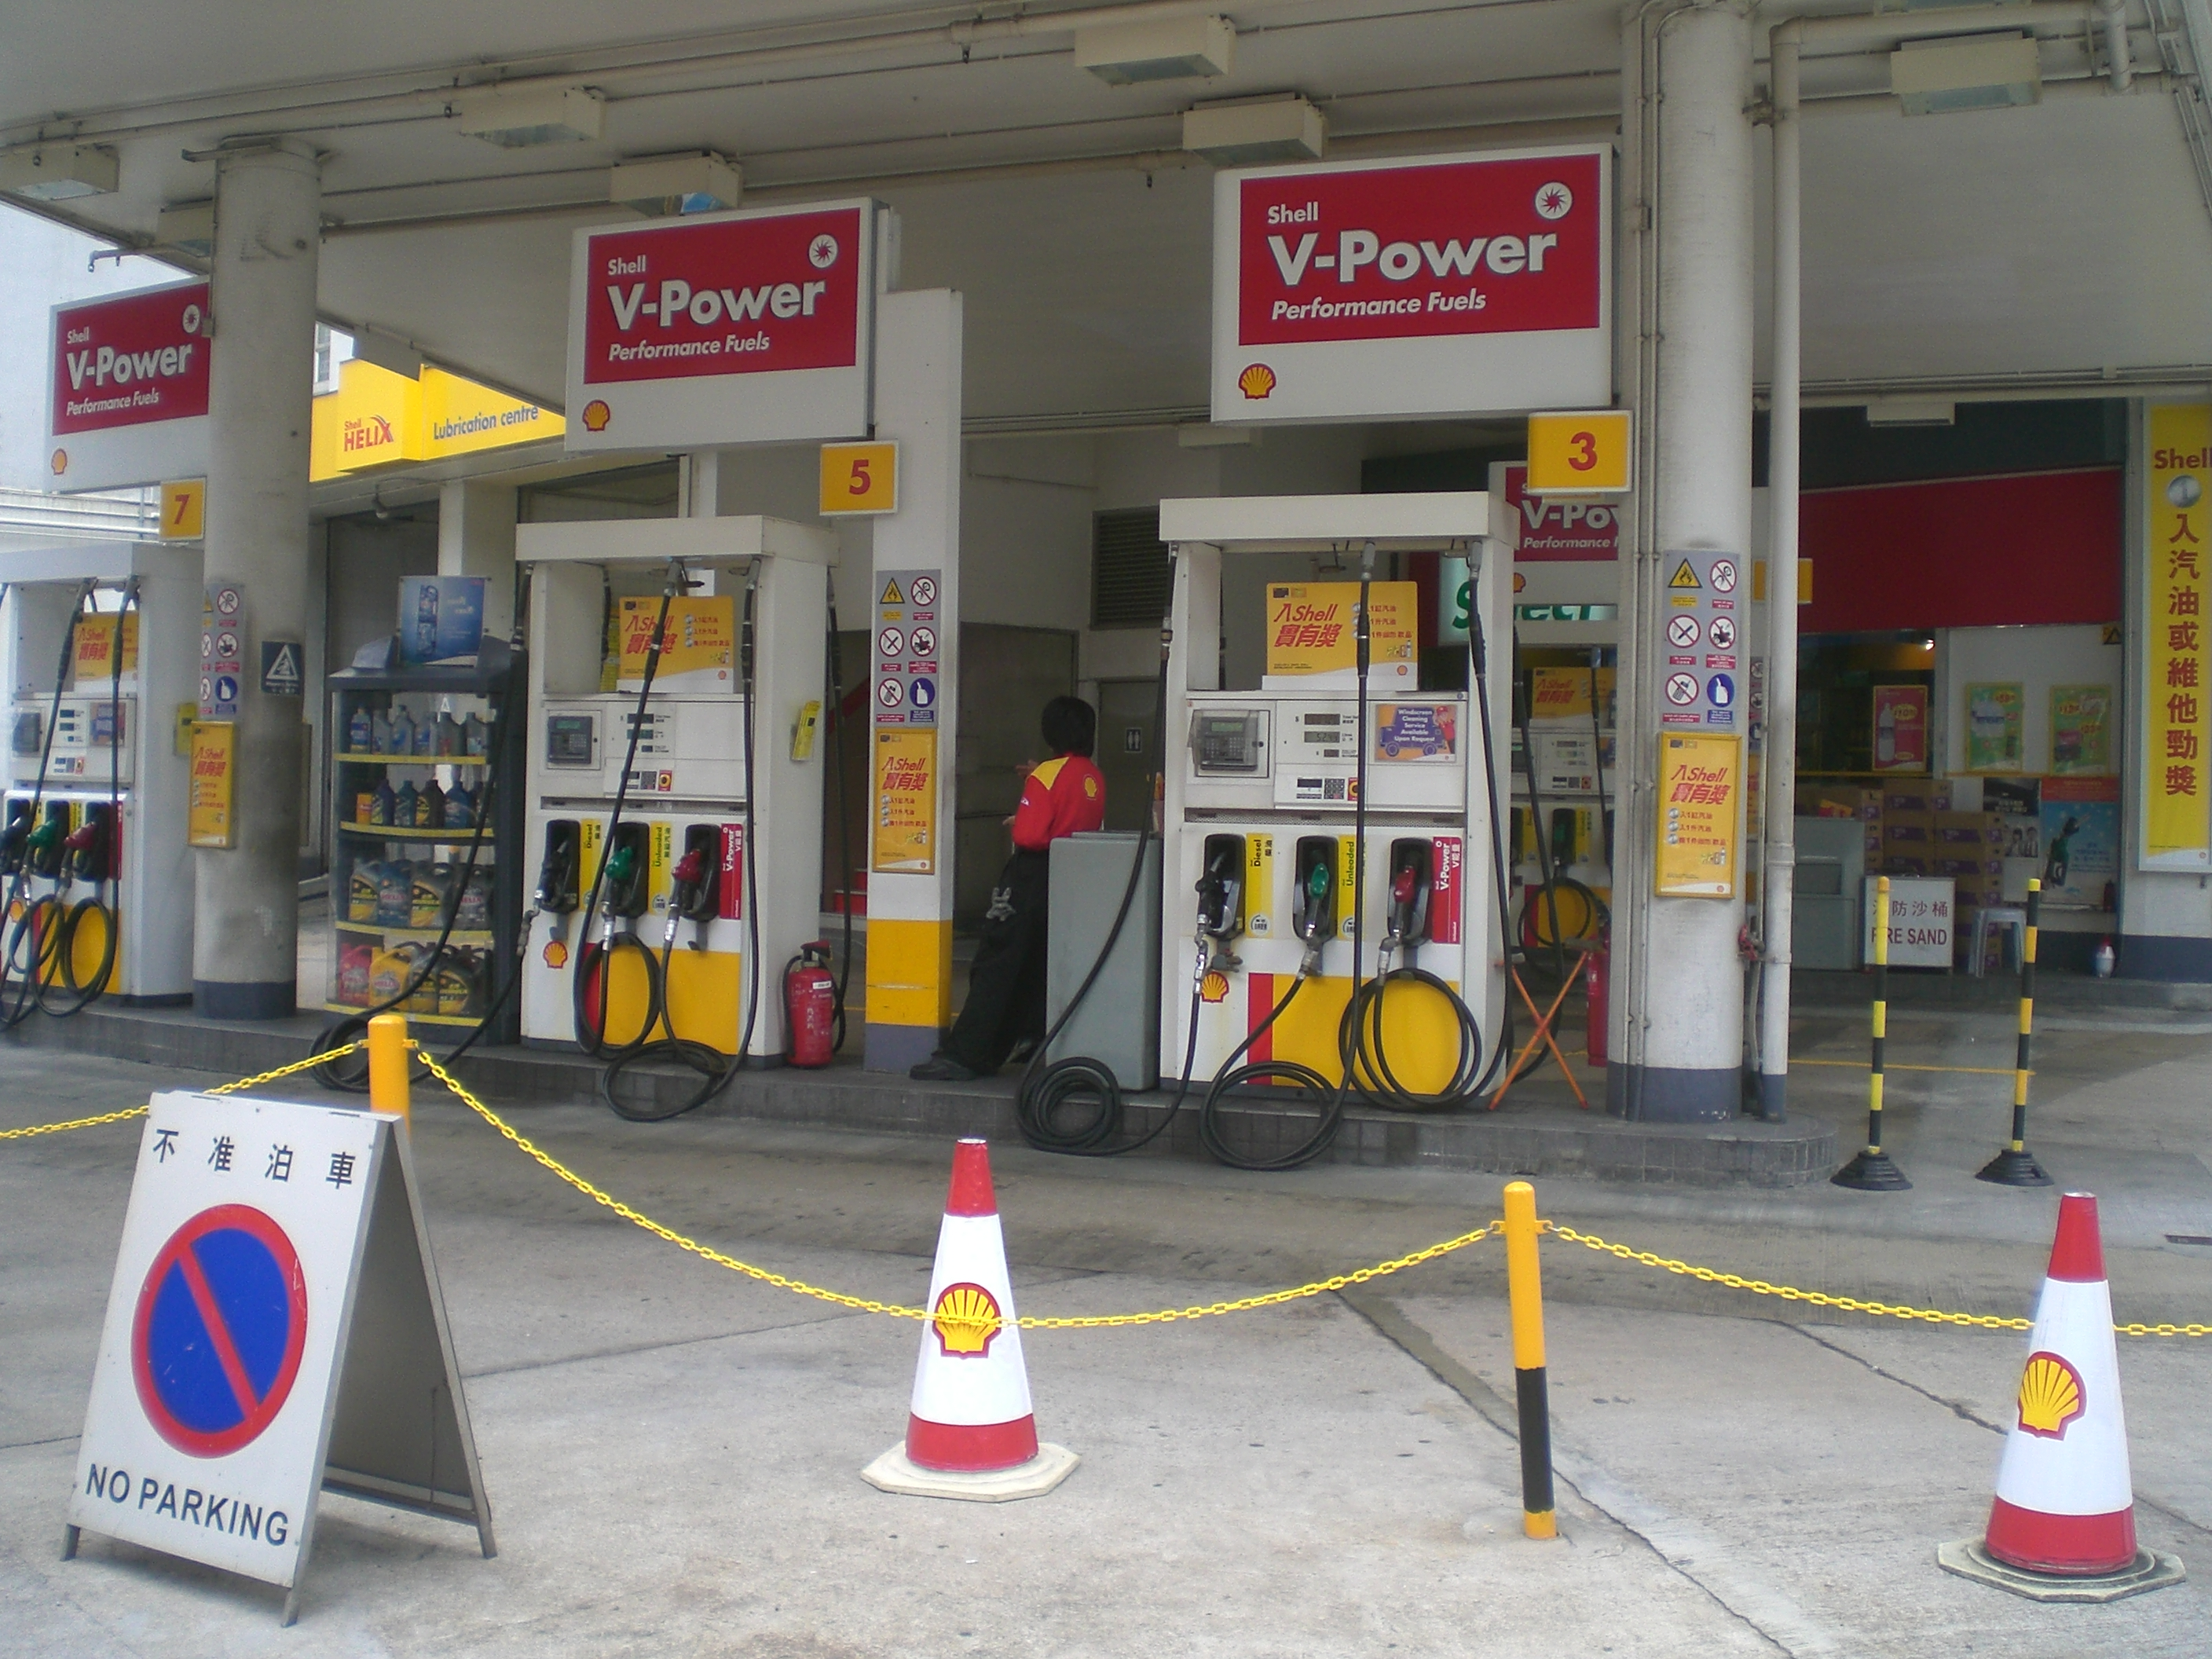 File:HK Mongkok Road Shell V-Power Petrol Station.JPG ...